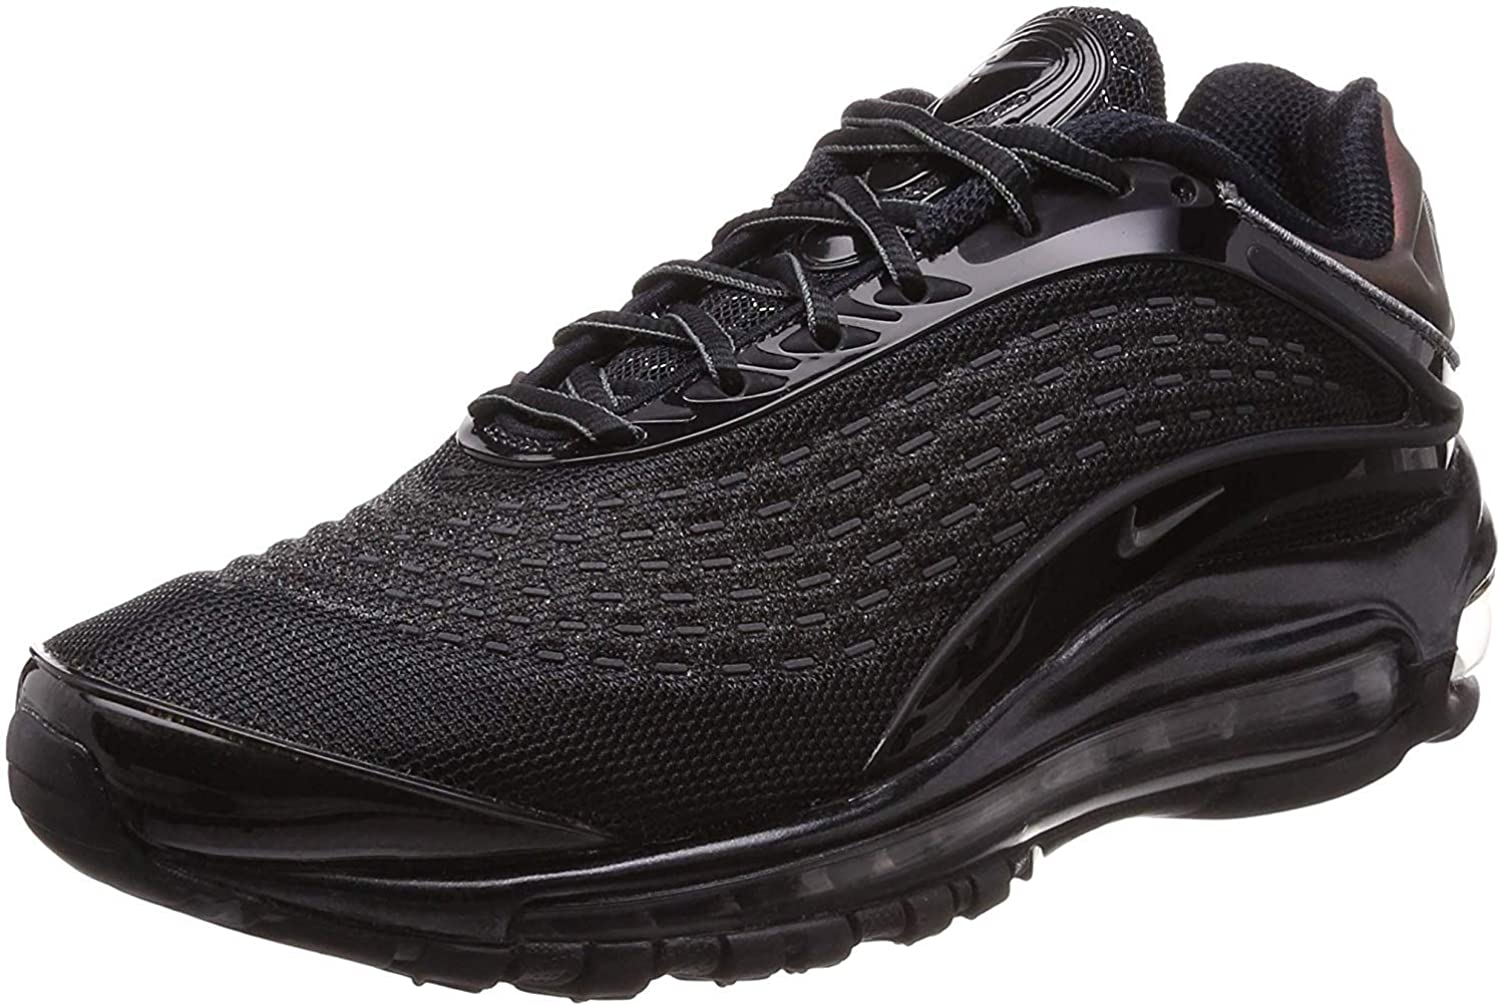 Nike - Air Max Deluxe: Amazon.ca: Shoes